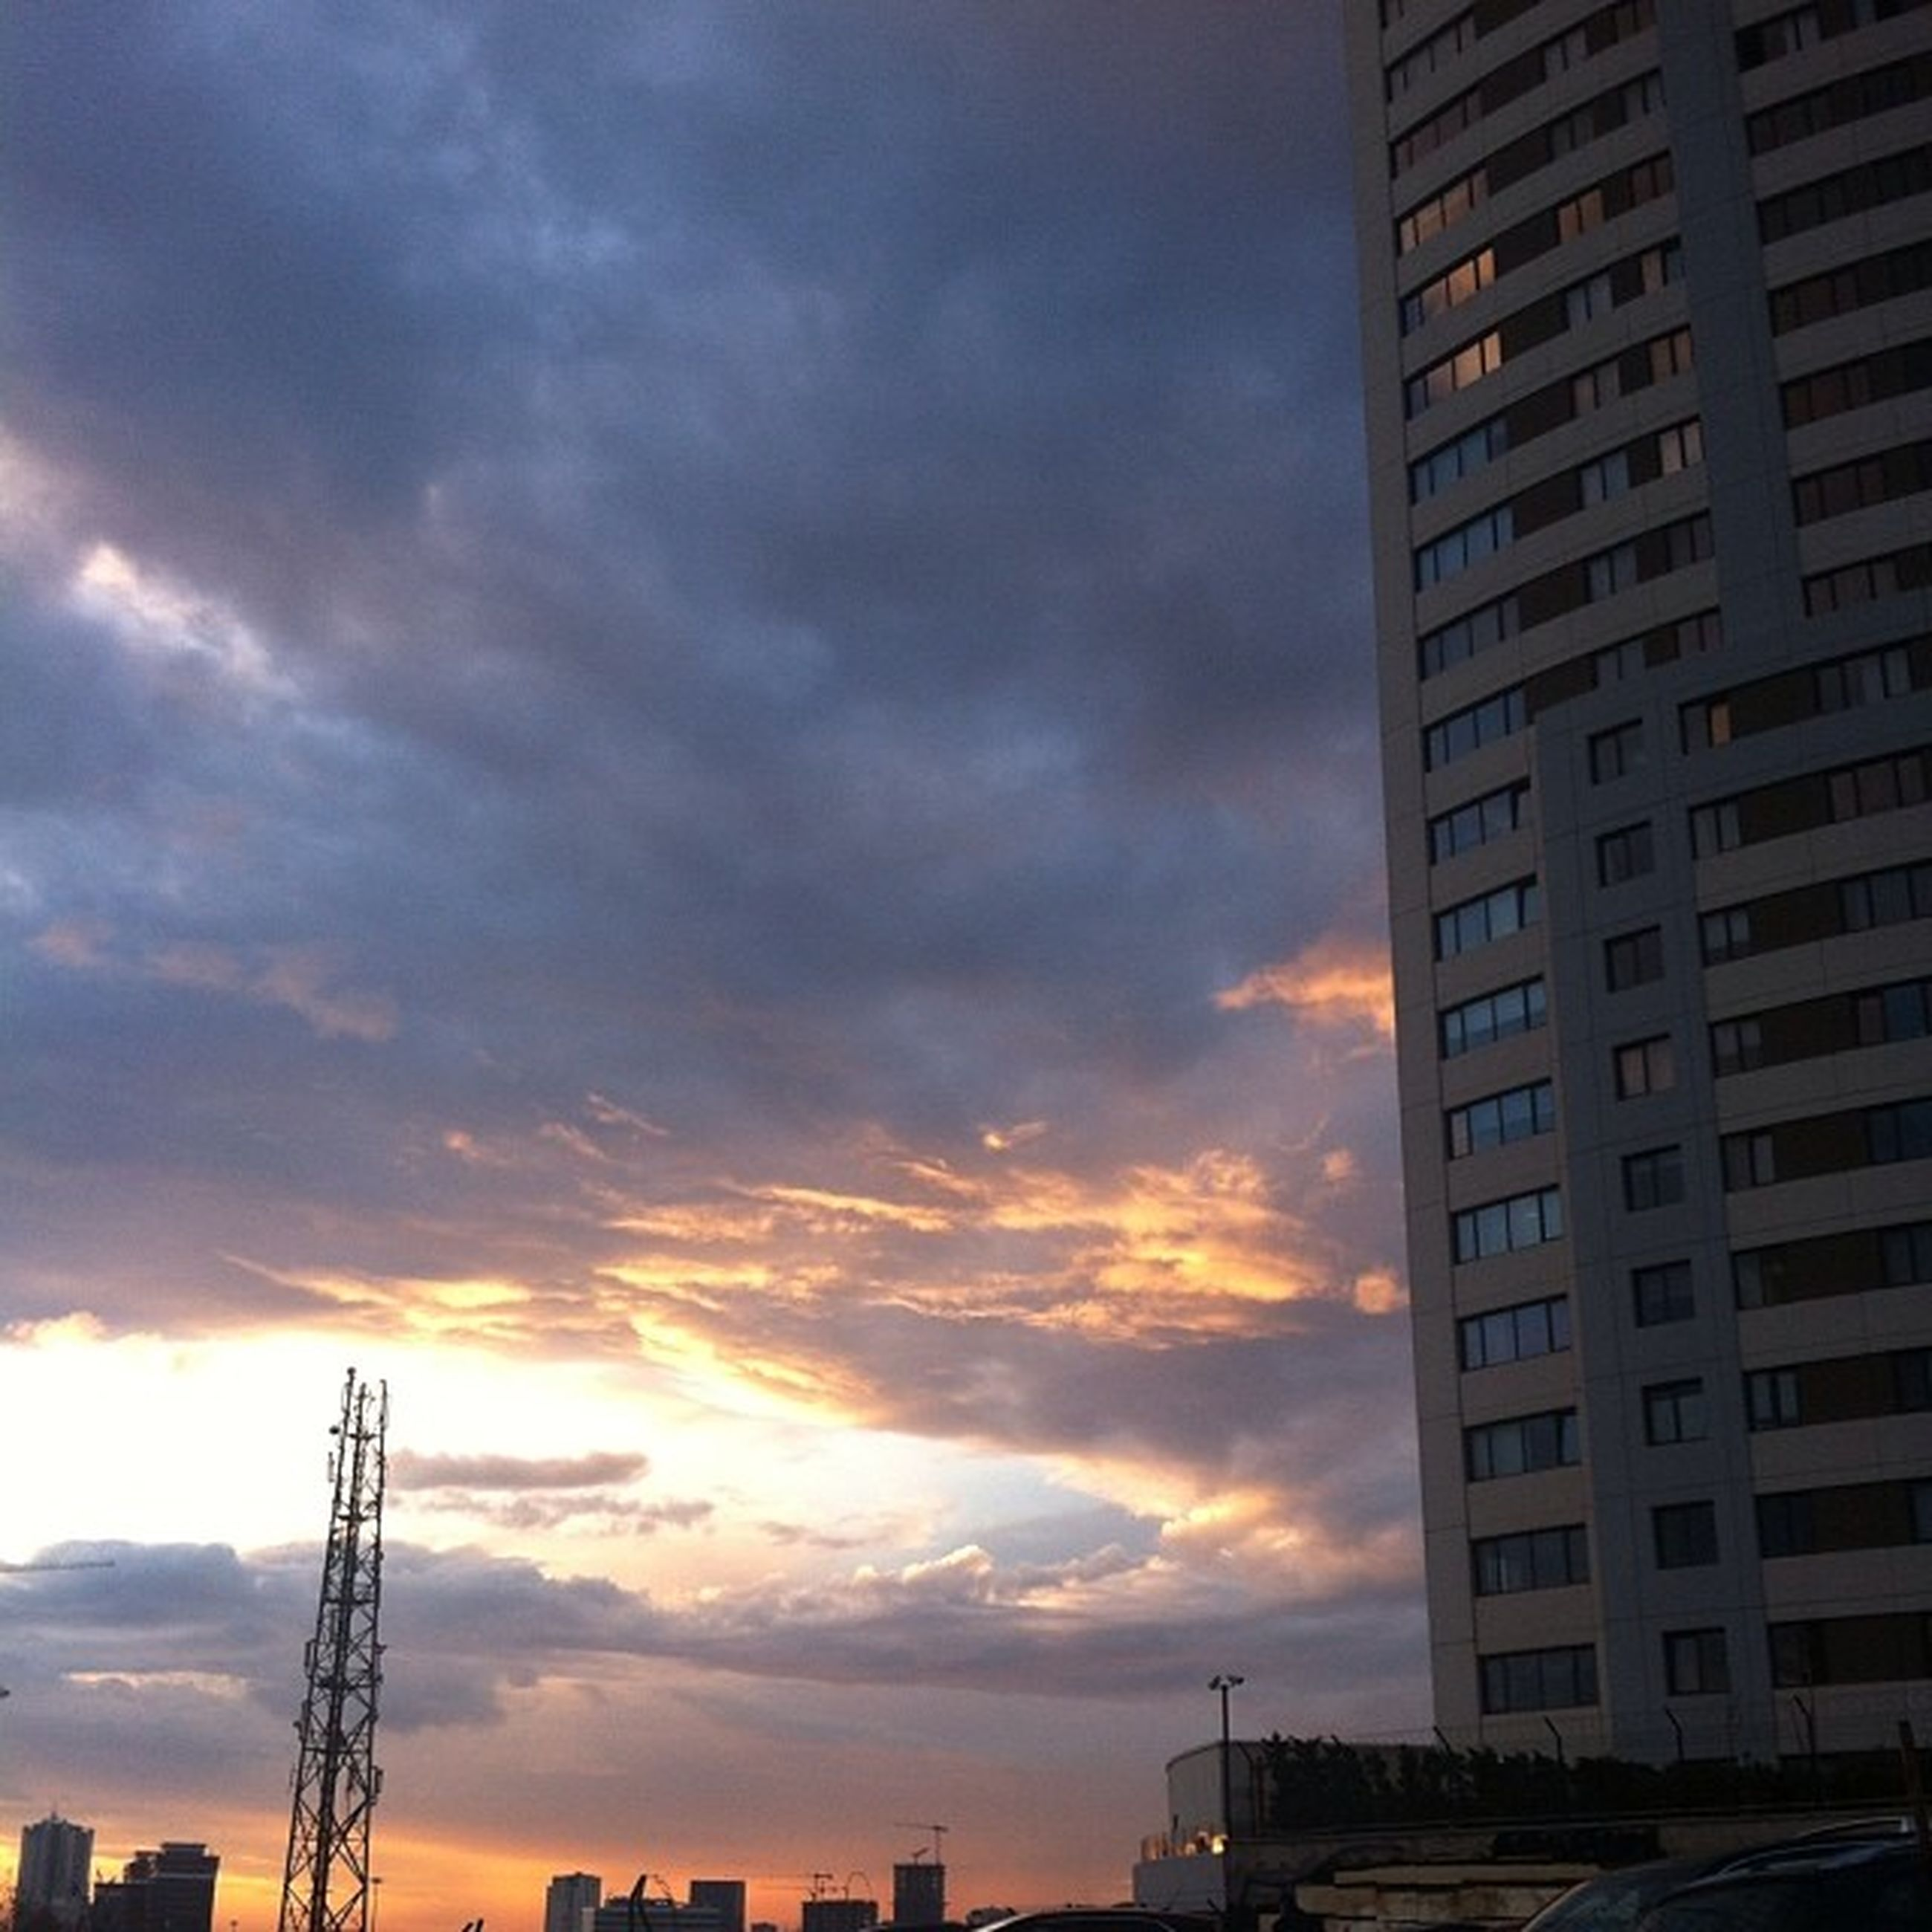 building exterior, architecture, built structure, sky, sunset, cloud - sky, city, low angle view, cloudy, silhouette, building, cloud, residential building, weather, residential structure, orange color, overcast, dramatic sky, dusk, outdoors